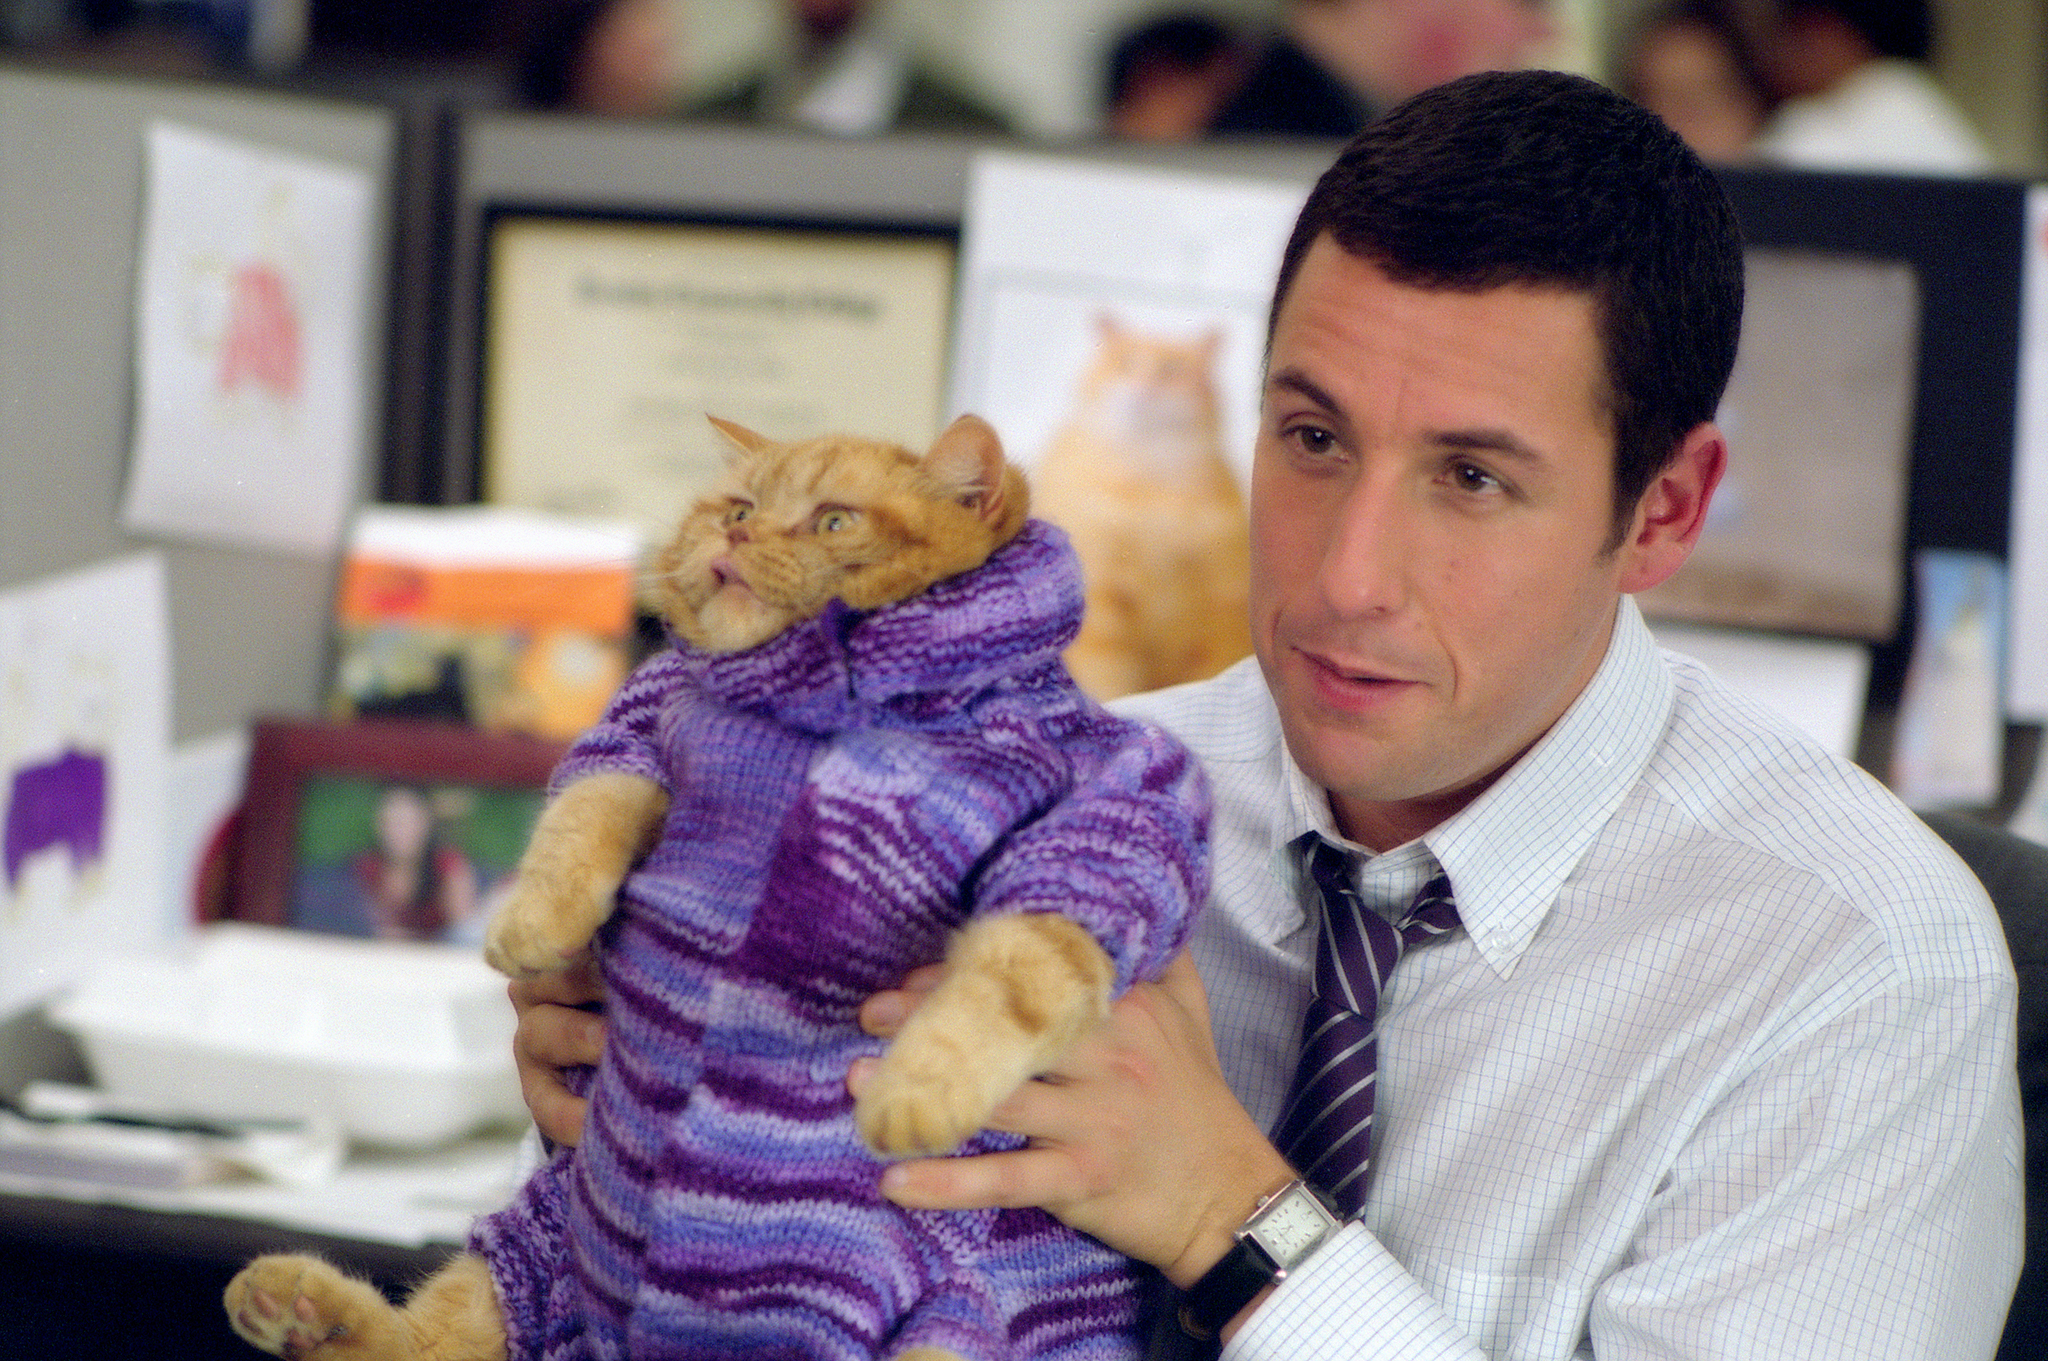 Best Adam Sandler movies from dramas to comedies to cult faves